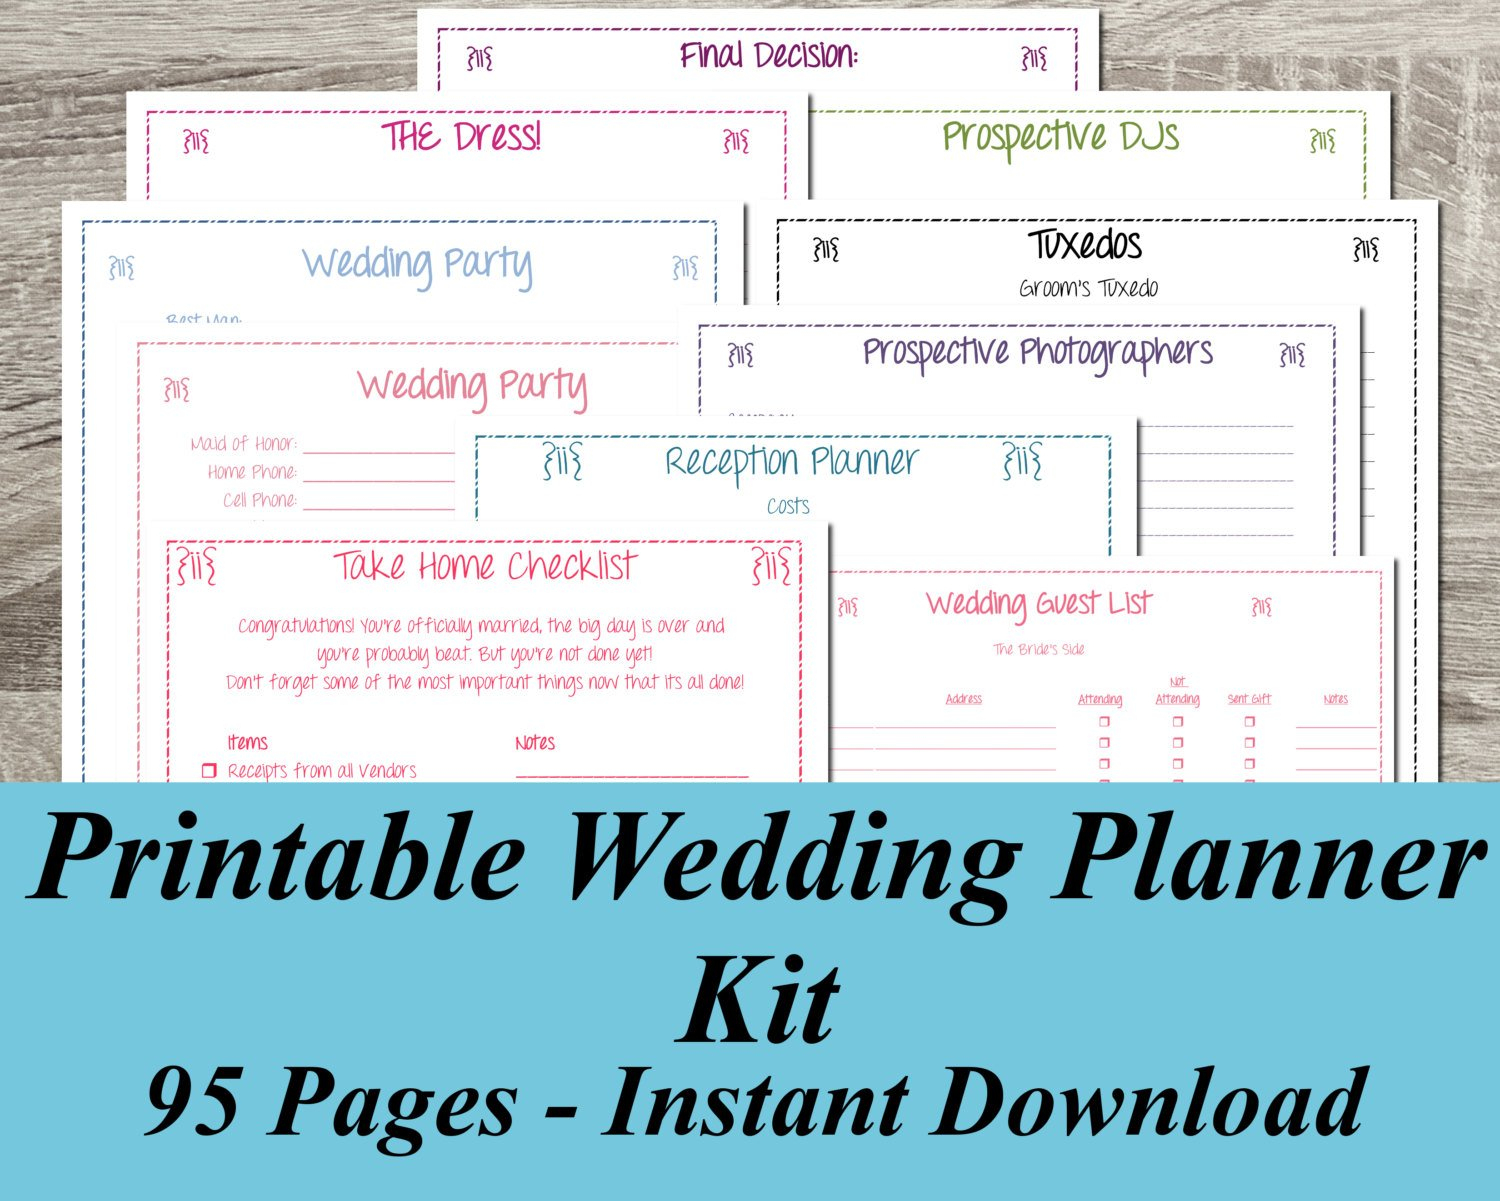 Free Printable Wedding Planner ~ Wedding Invitation Collection - Free Printable Wedding Planner Workbook